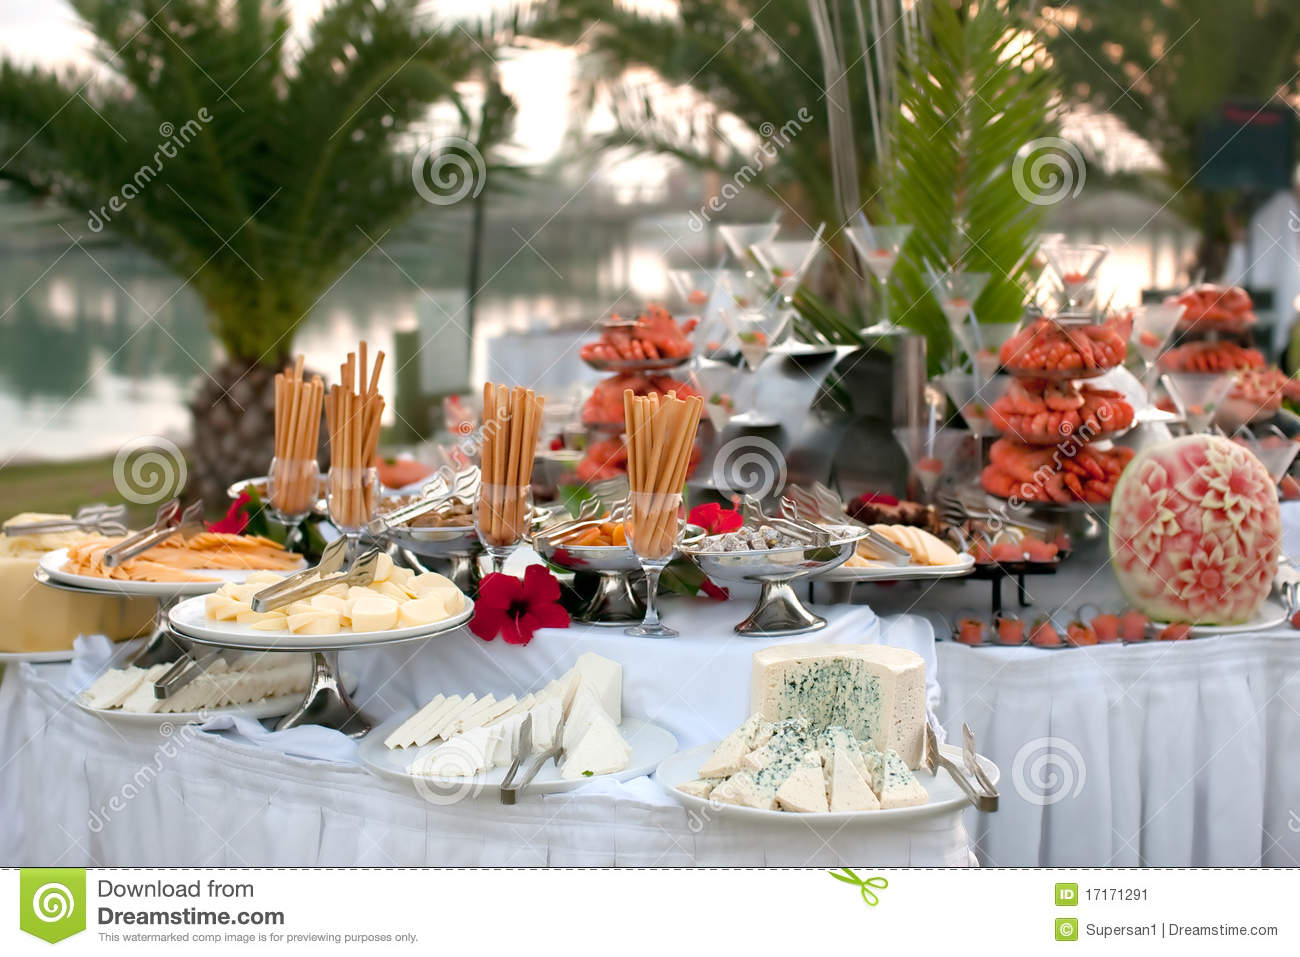 Buffet Table With Seafood Stock Image Image Of Dish 17171291